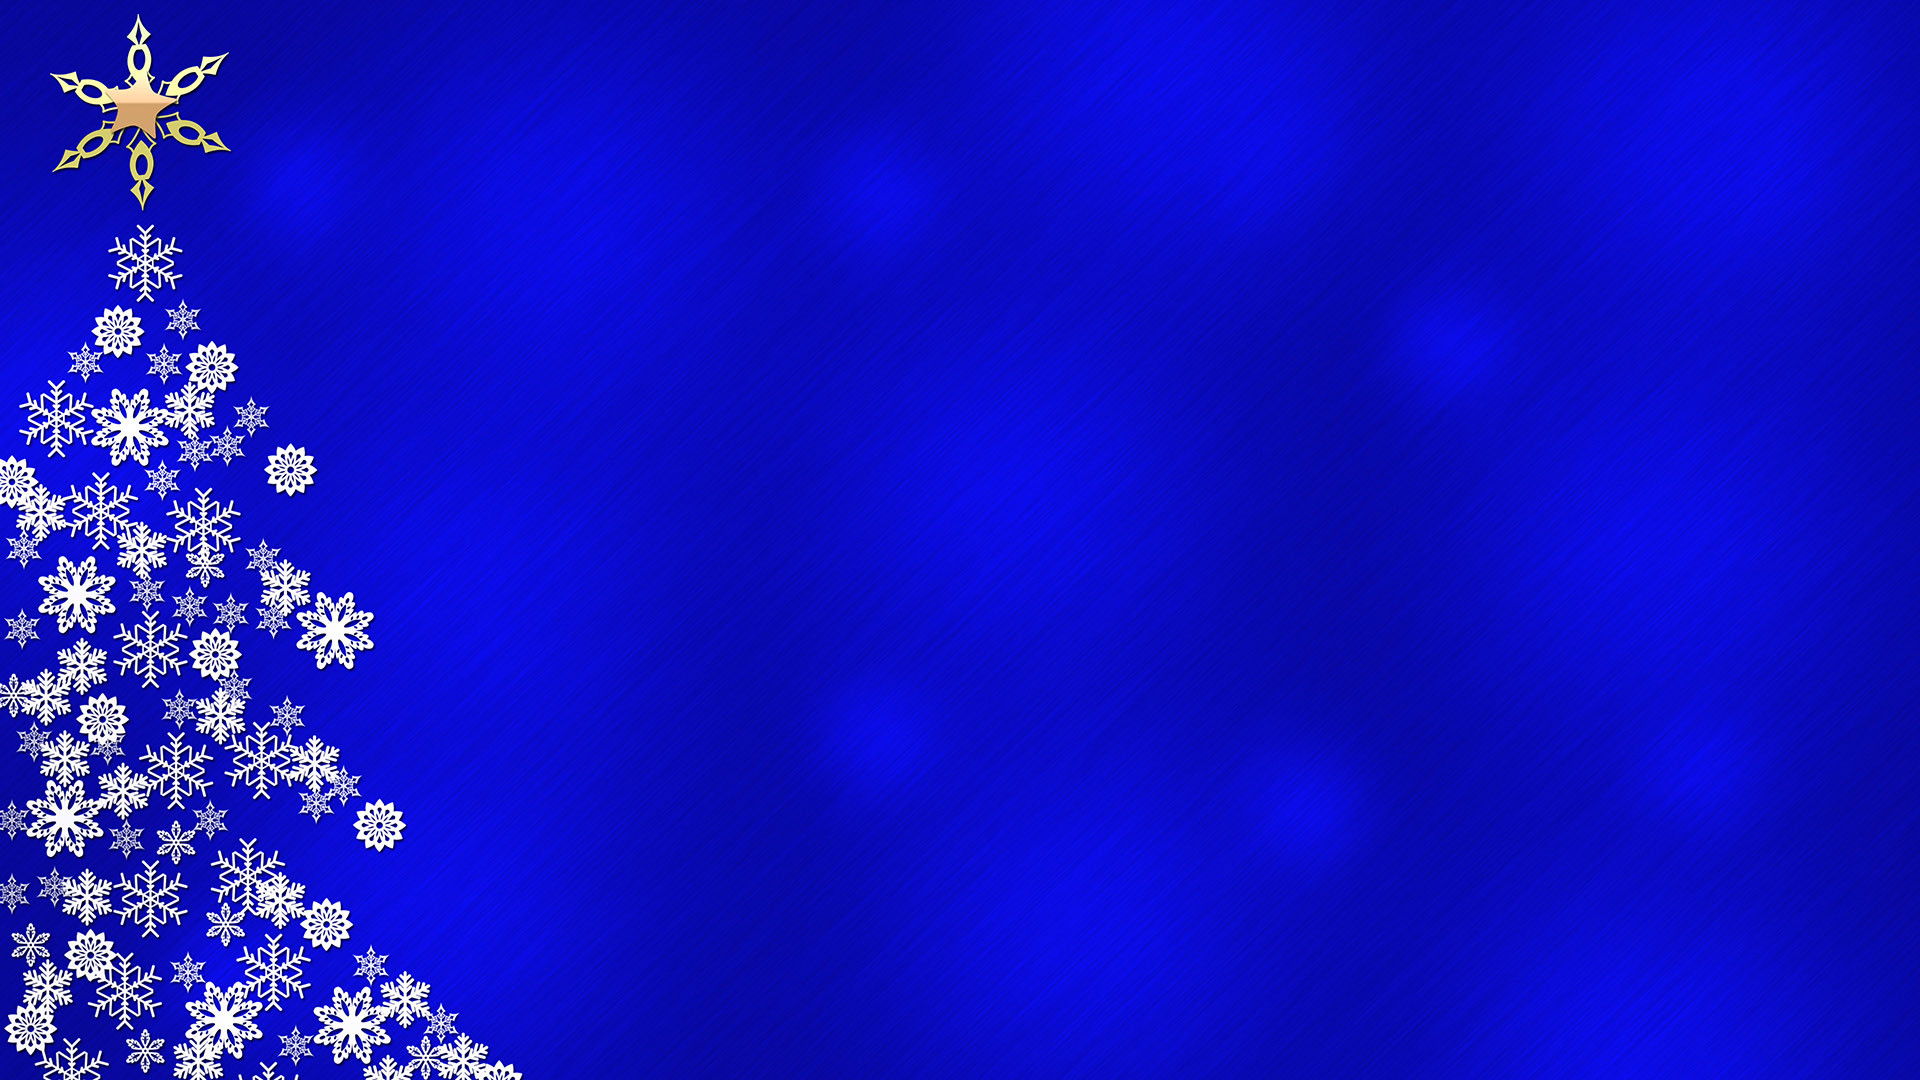 Blue Christmas Wallpaper 70 Images